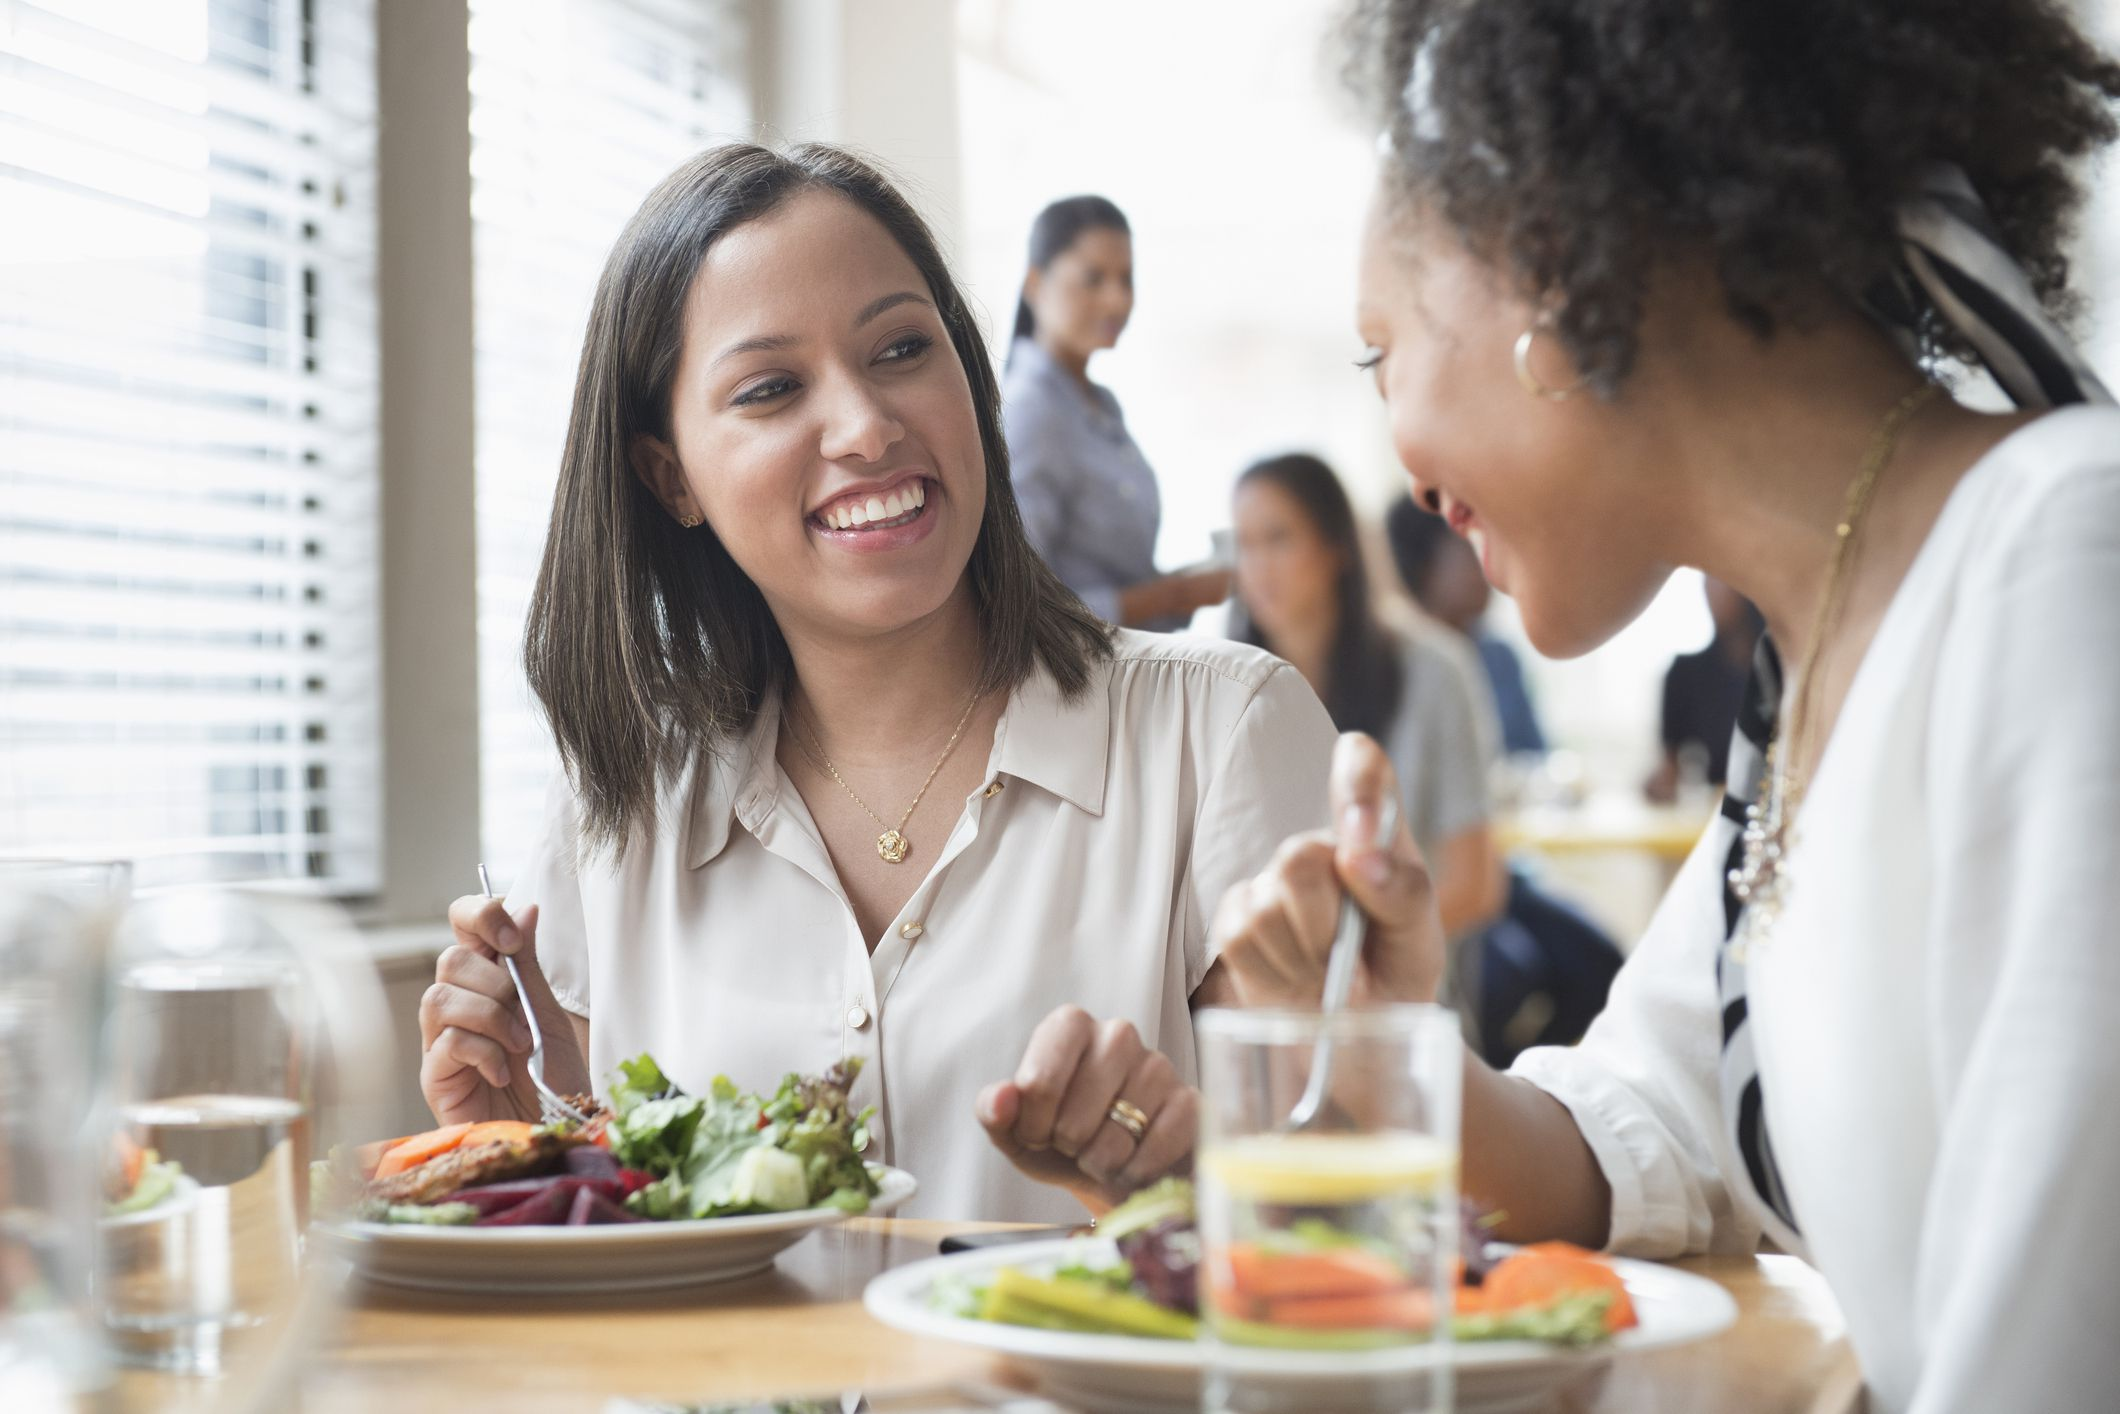 How to Eat Out While on the South Beach Diet